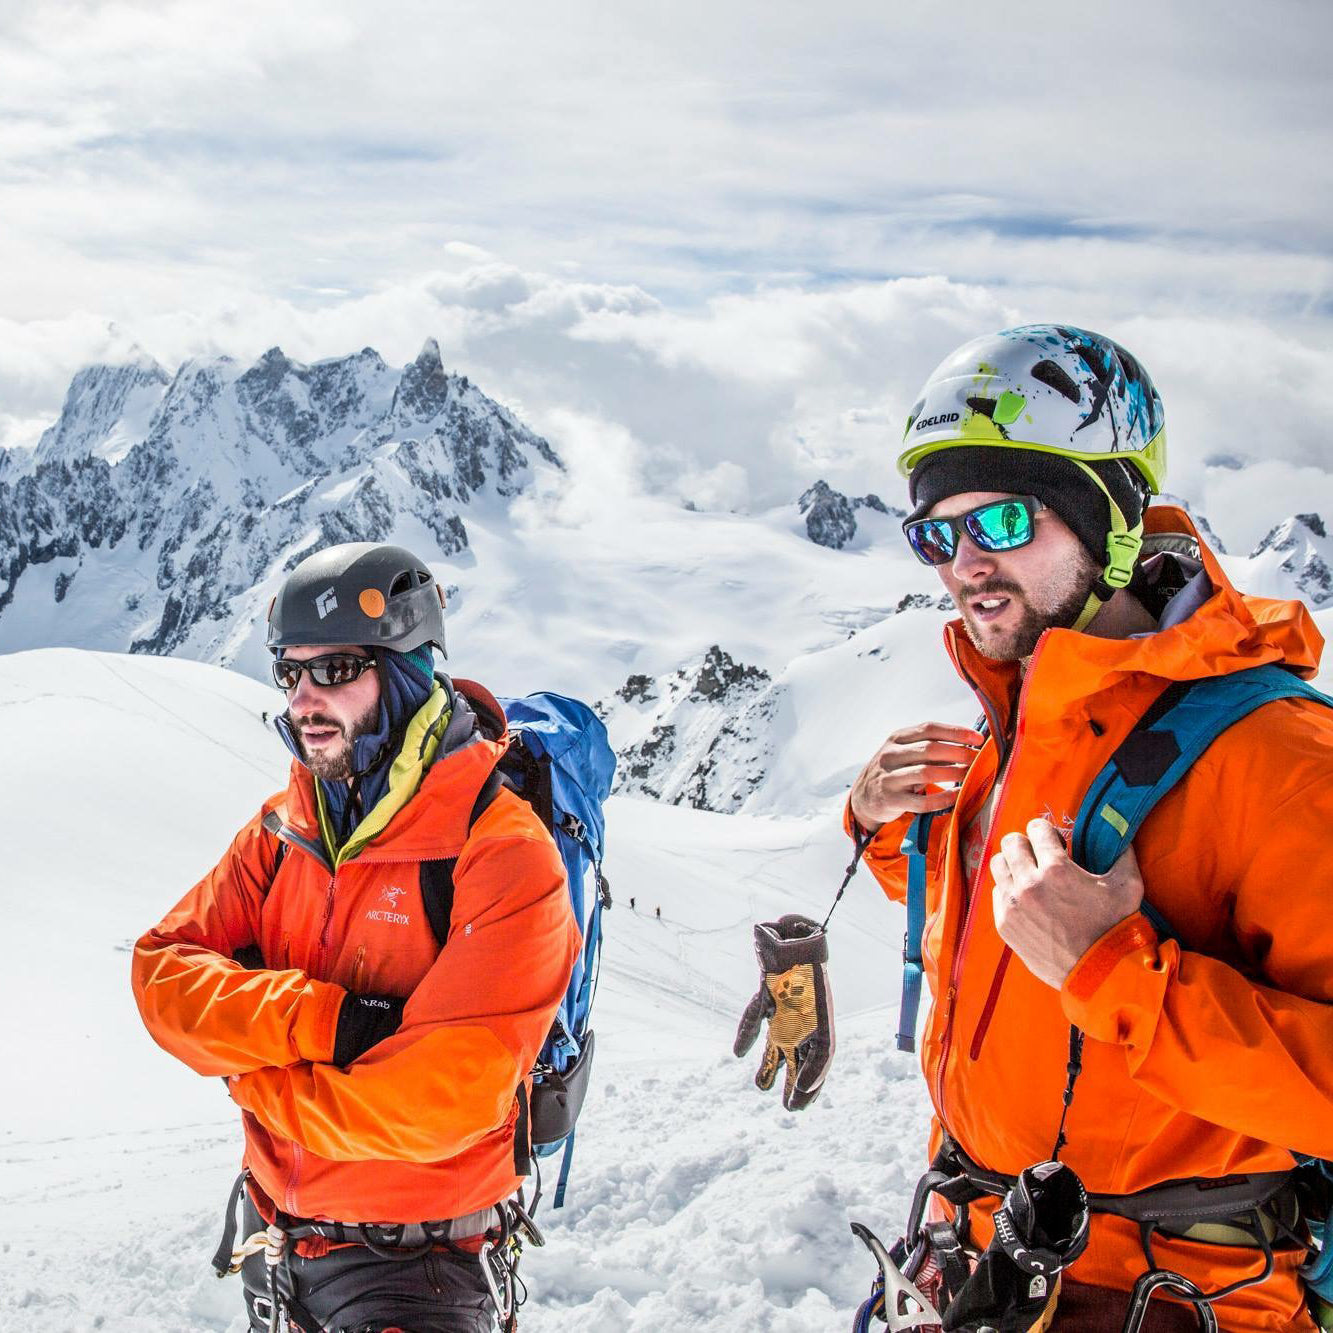 Image for article Arcteryx Alpine Academy 2016